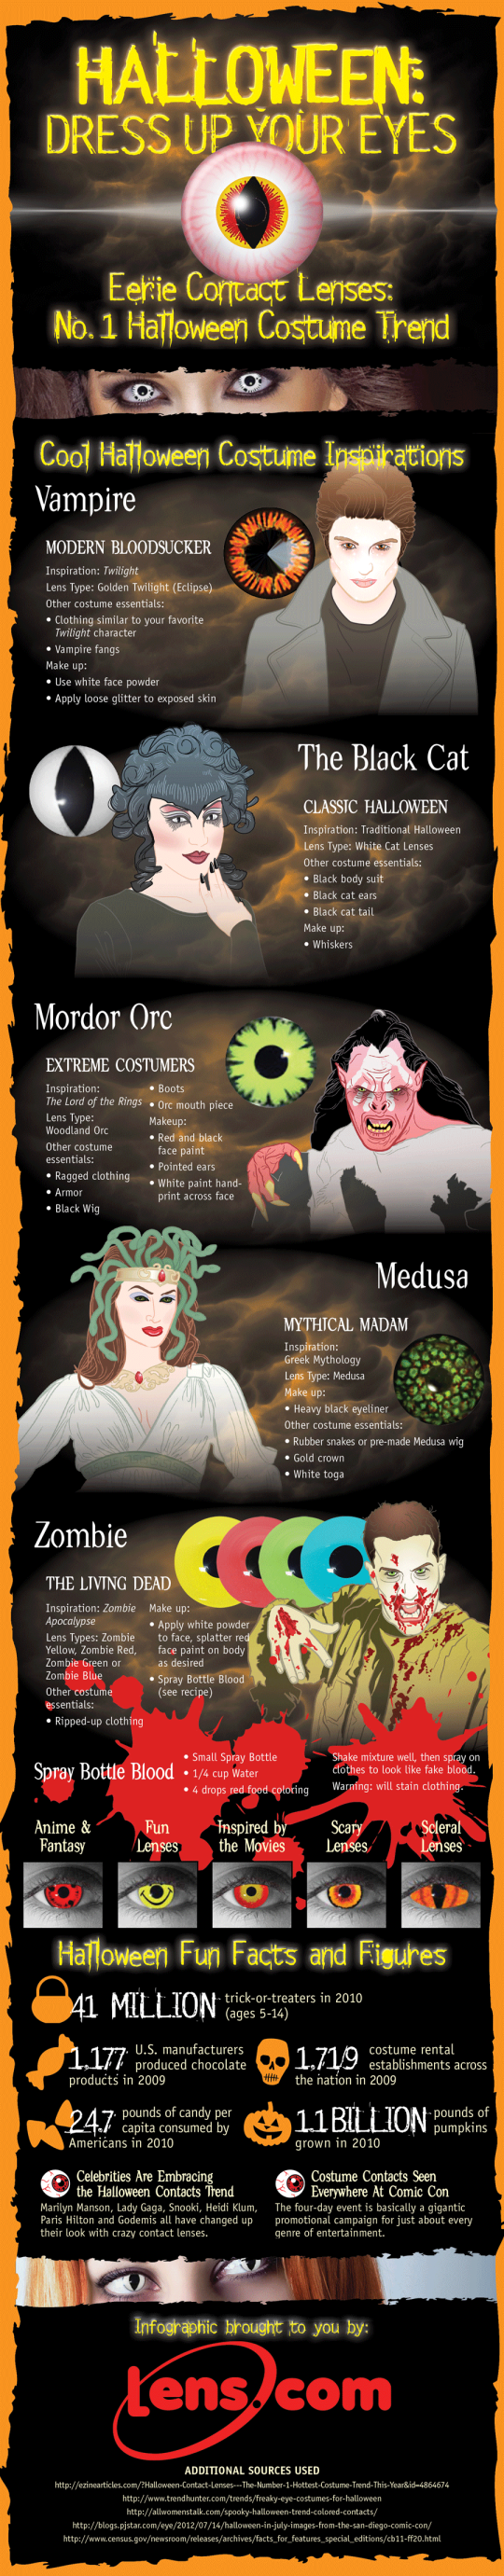 16-10-2012-Halloween-Infographic_thumb.png